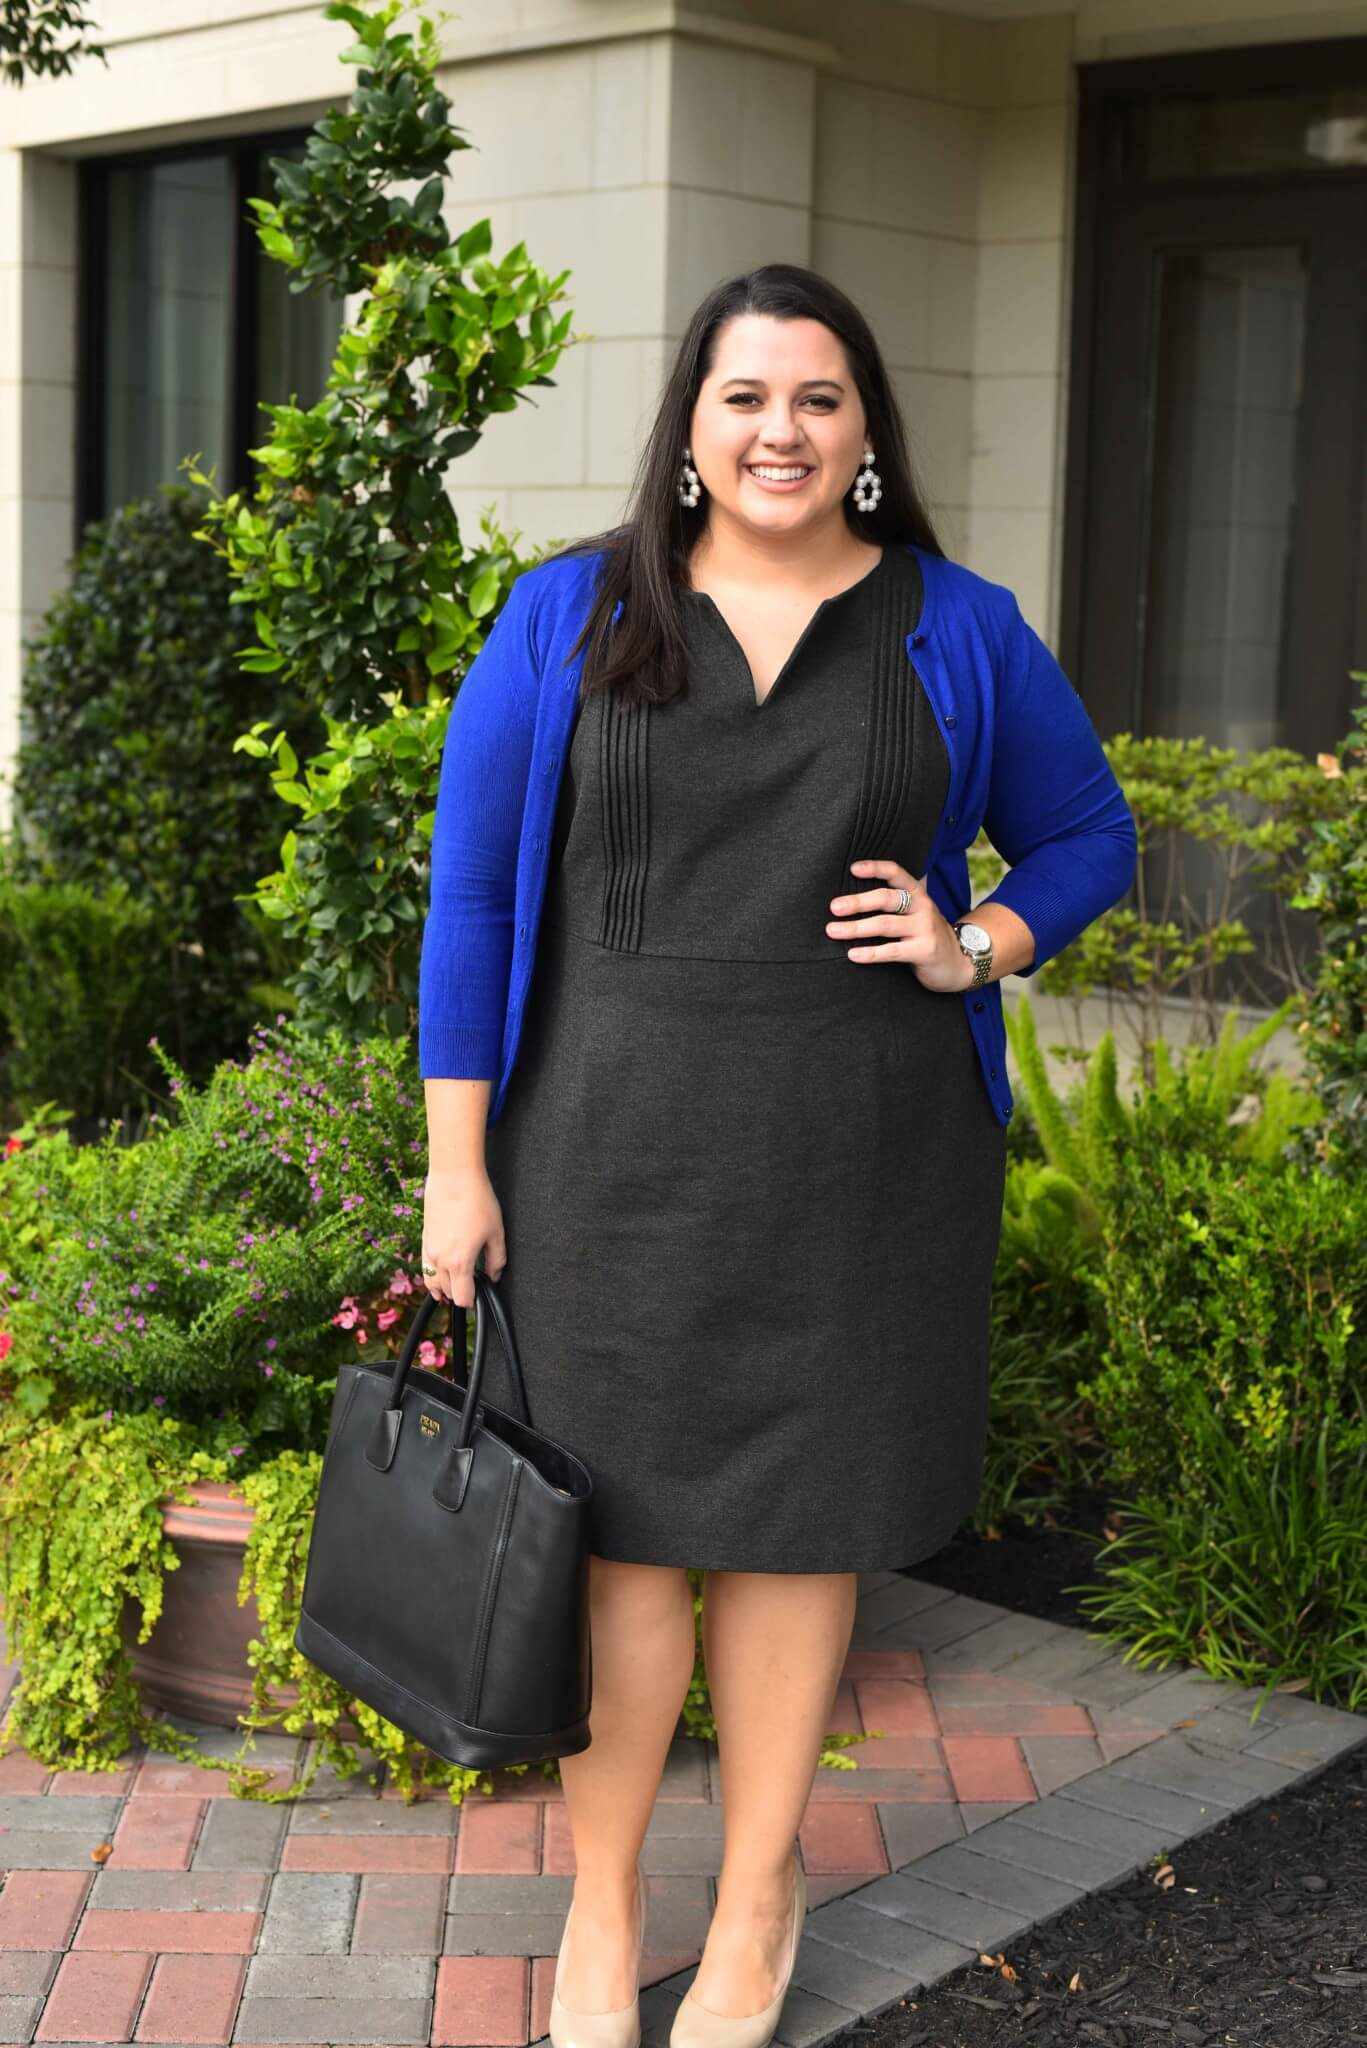 I'm sharing my favorite plus size clothing rental service from Gwynnie Bee and how I use it to look chic at work and not wear the same thing multiple times.